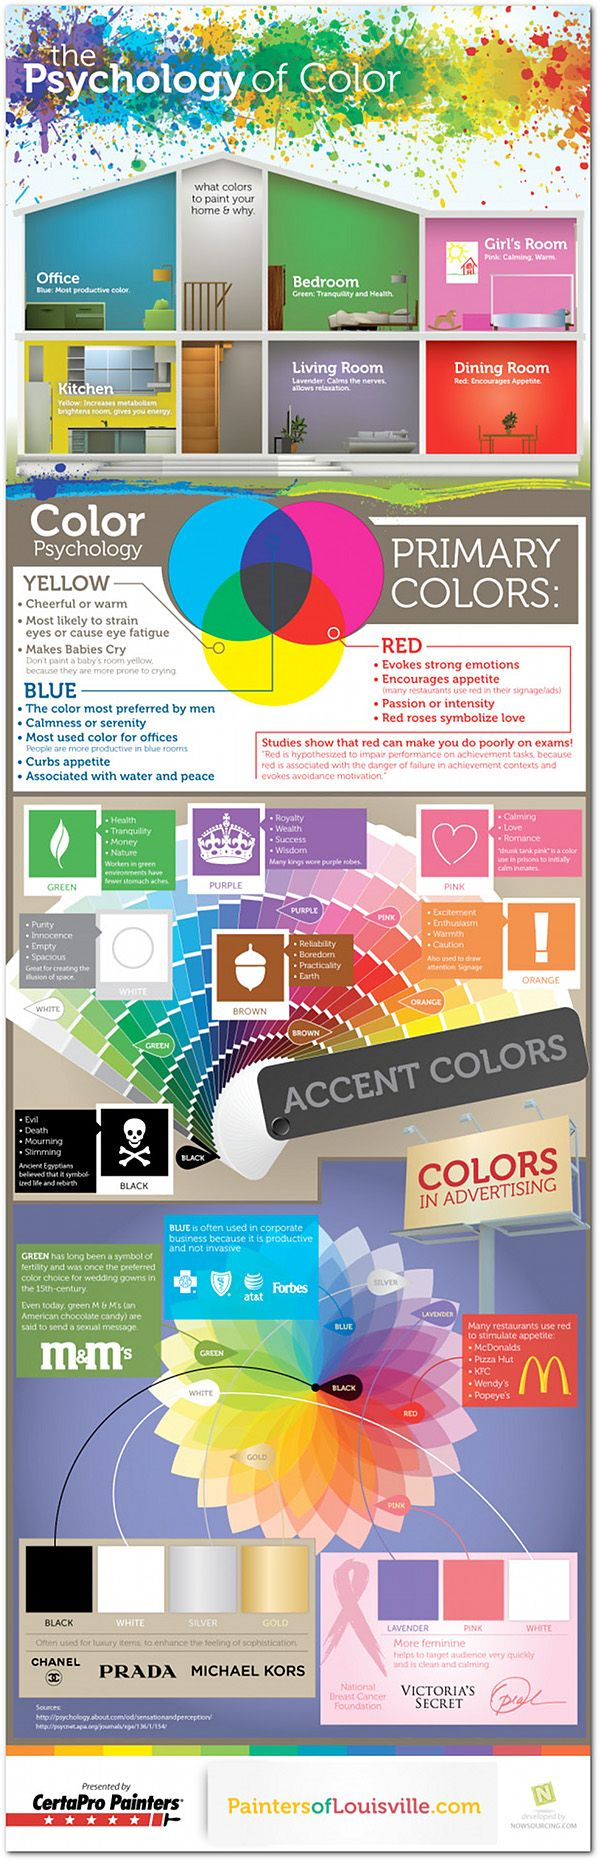 Why marketers choose certain colors. Or why you should never paint a baby's room yellow!